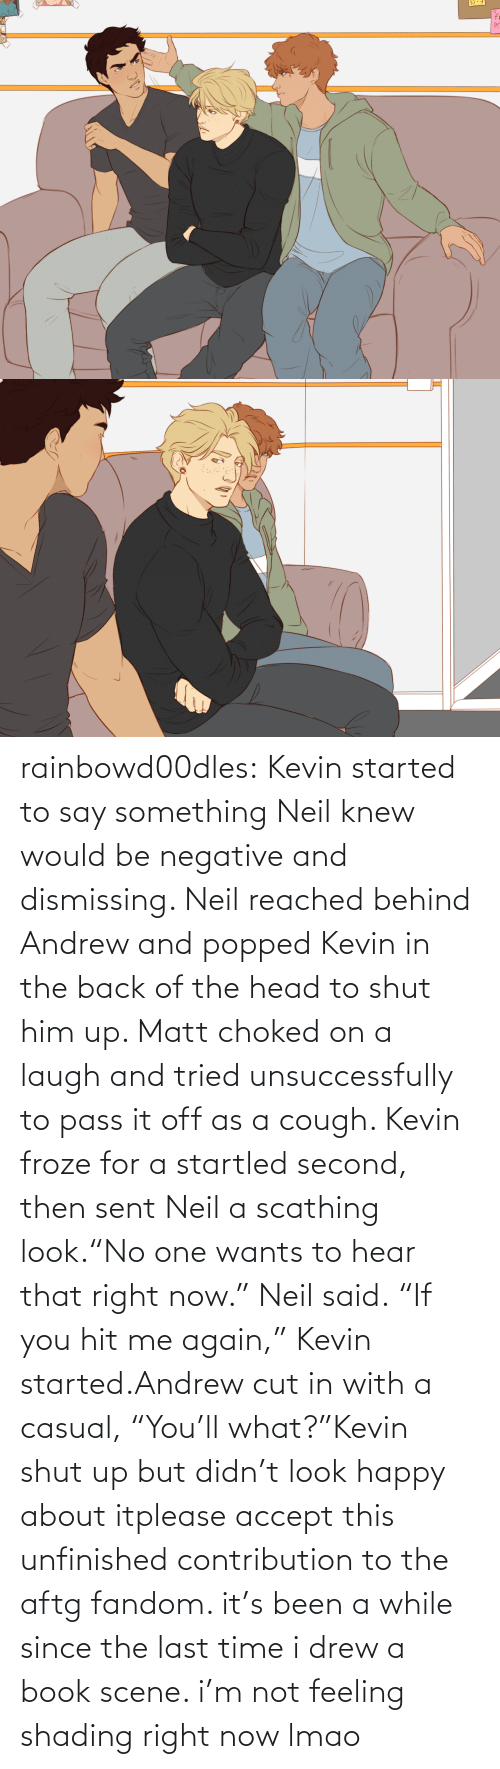 "Matt: rainbowd00dles:  Kevin started to say something Neil knew would be negative and dismissing. Neil reached behind Andrew and popped Kevin in the back of the head to shut him up. Matt choked on a laugh and tried unsuccessfully to pass it off as a cough. Kevin froze for a startled second, then sent Neil a scathing look.""No one wants to hear that right now."" Neil said. ""If you hit me again,"" Kevin started.Andrew cut in with a casual, ""You'll what?""Kevin shut up but didn't look happy about itplease accept this unfinished contribution to the aftg fandom. it's been a while since the last time i drew a book scene. i'm not feeling shading right now lmao"